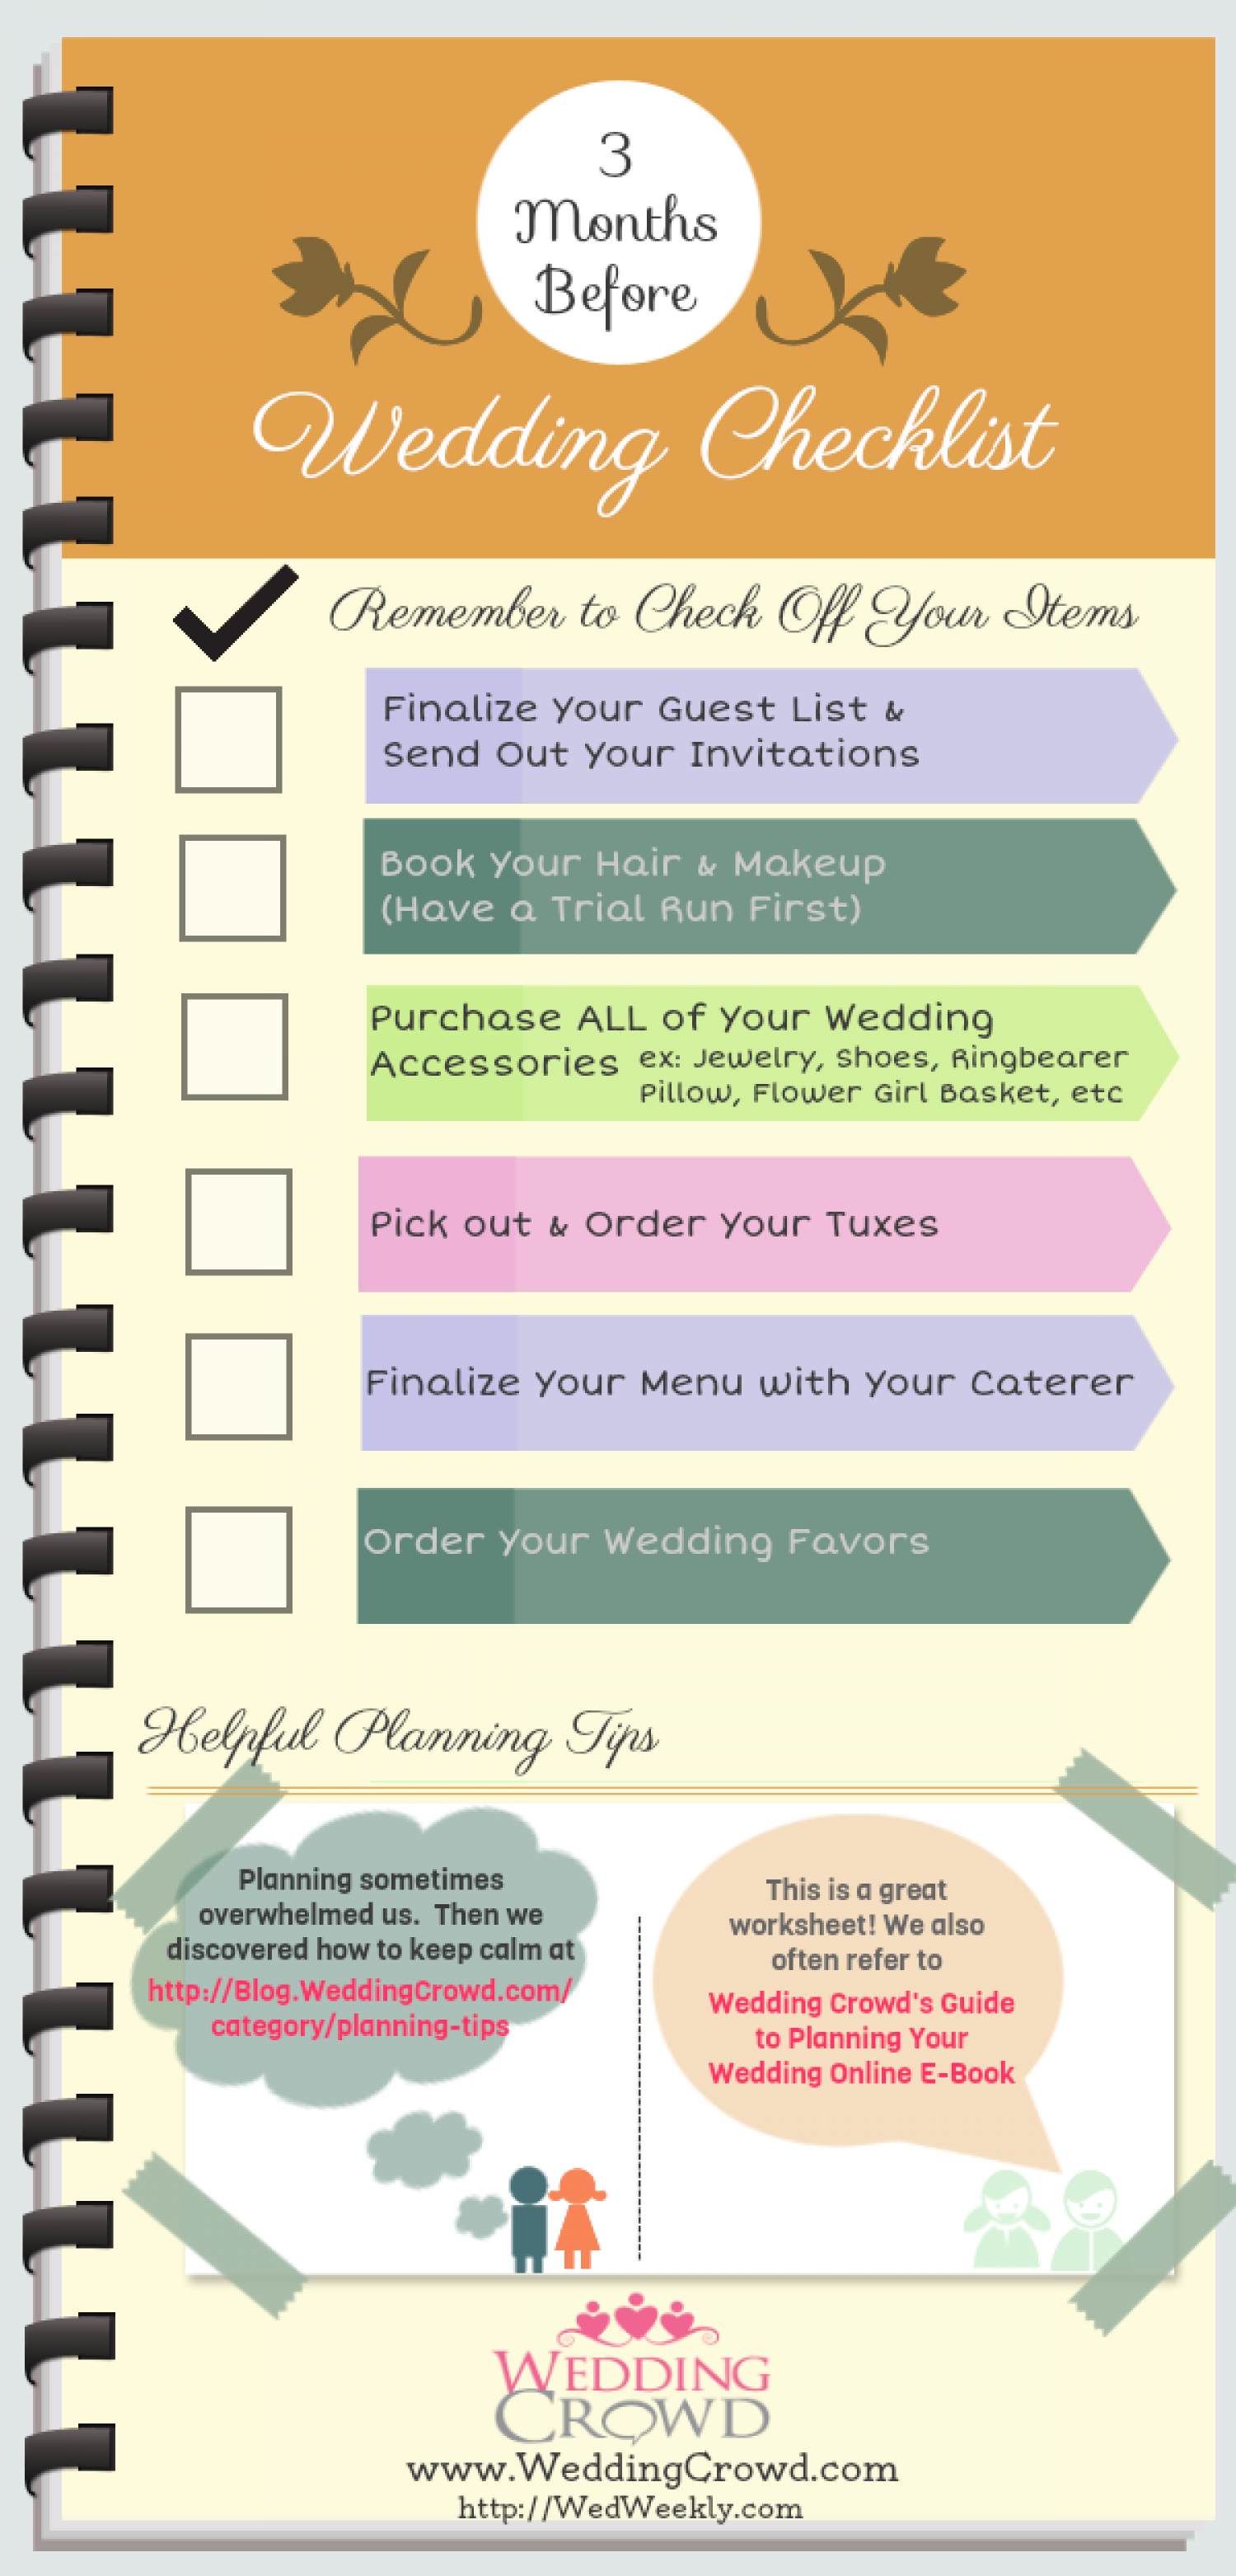 3 Months Before Wedding Planning Checklist Infographic